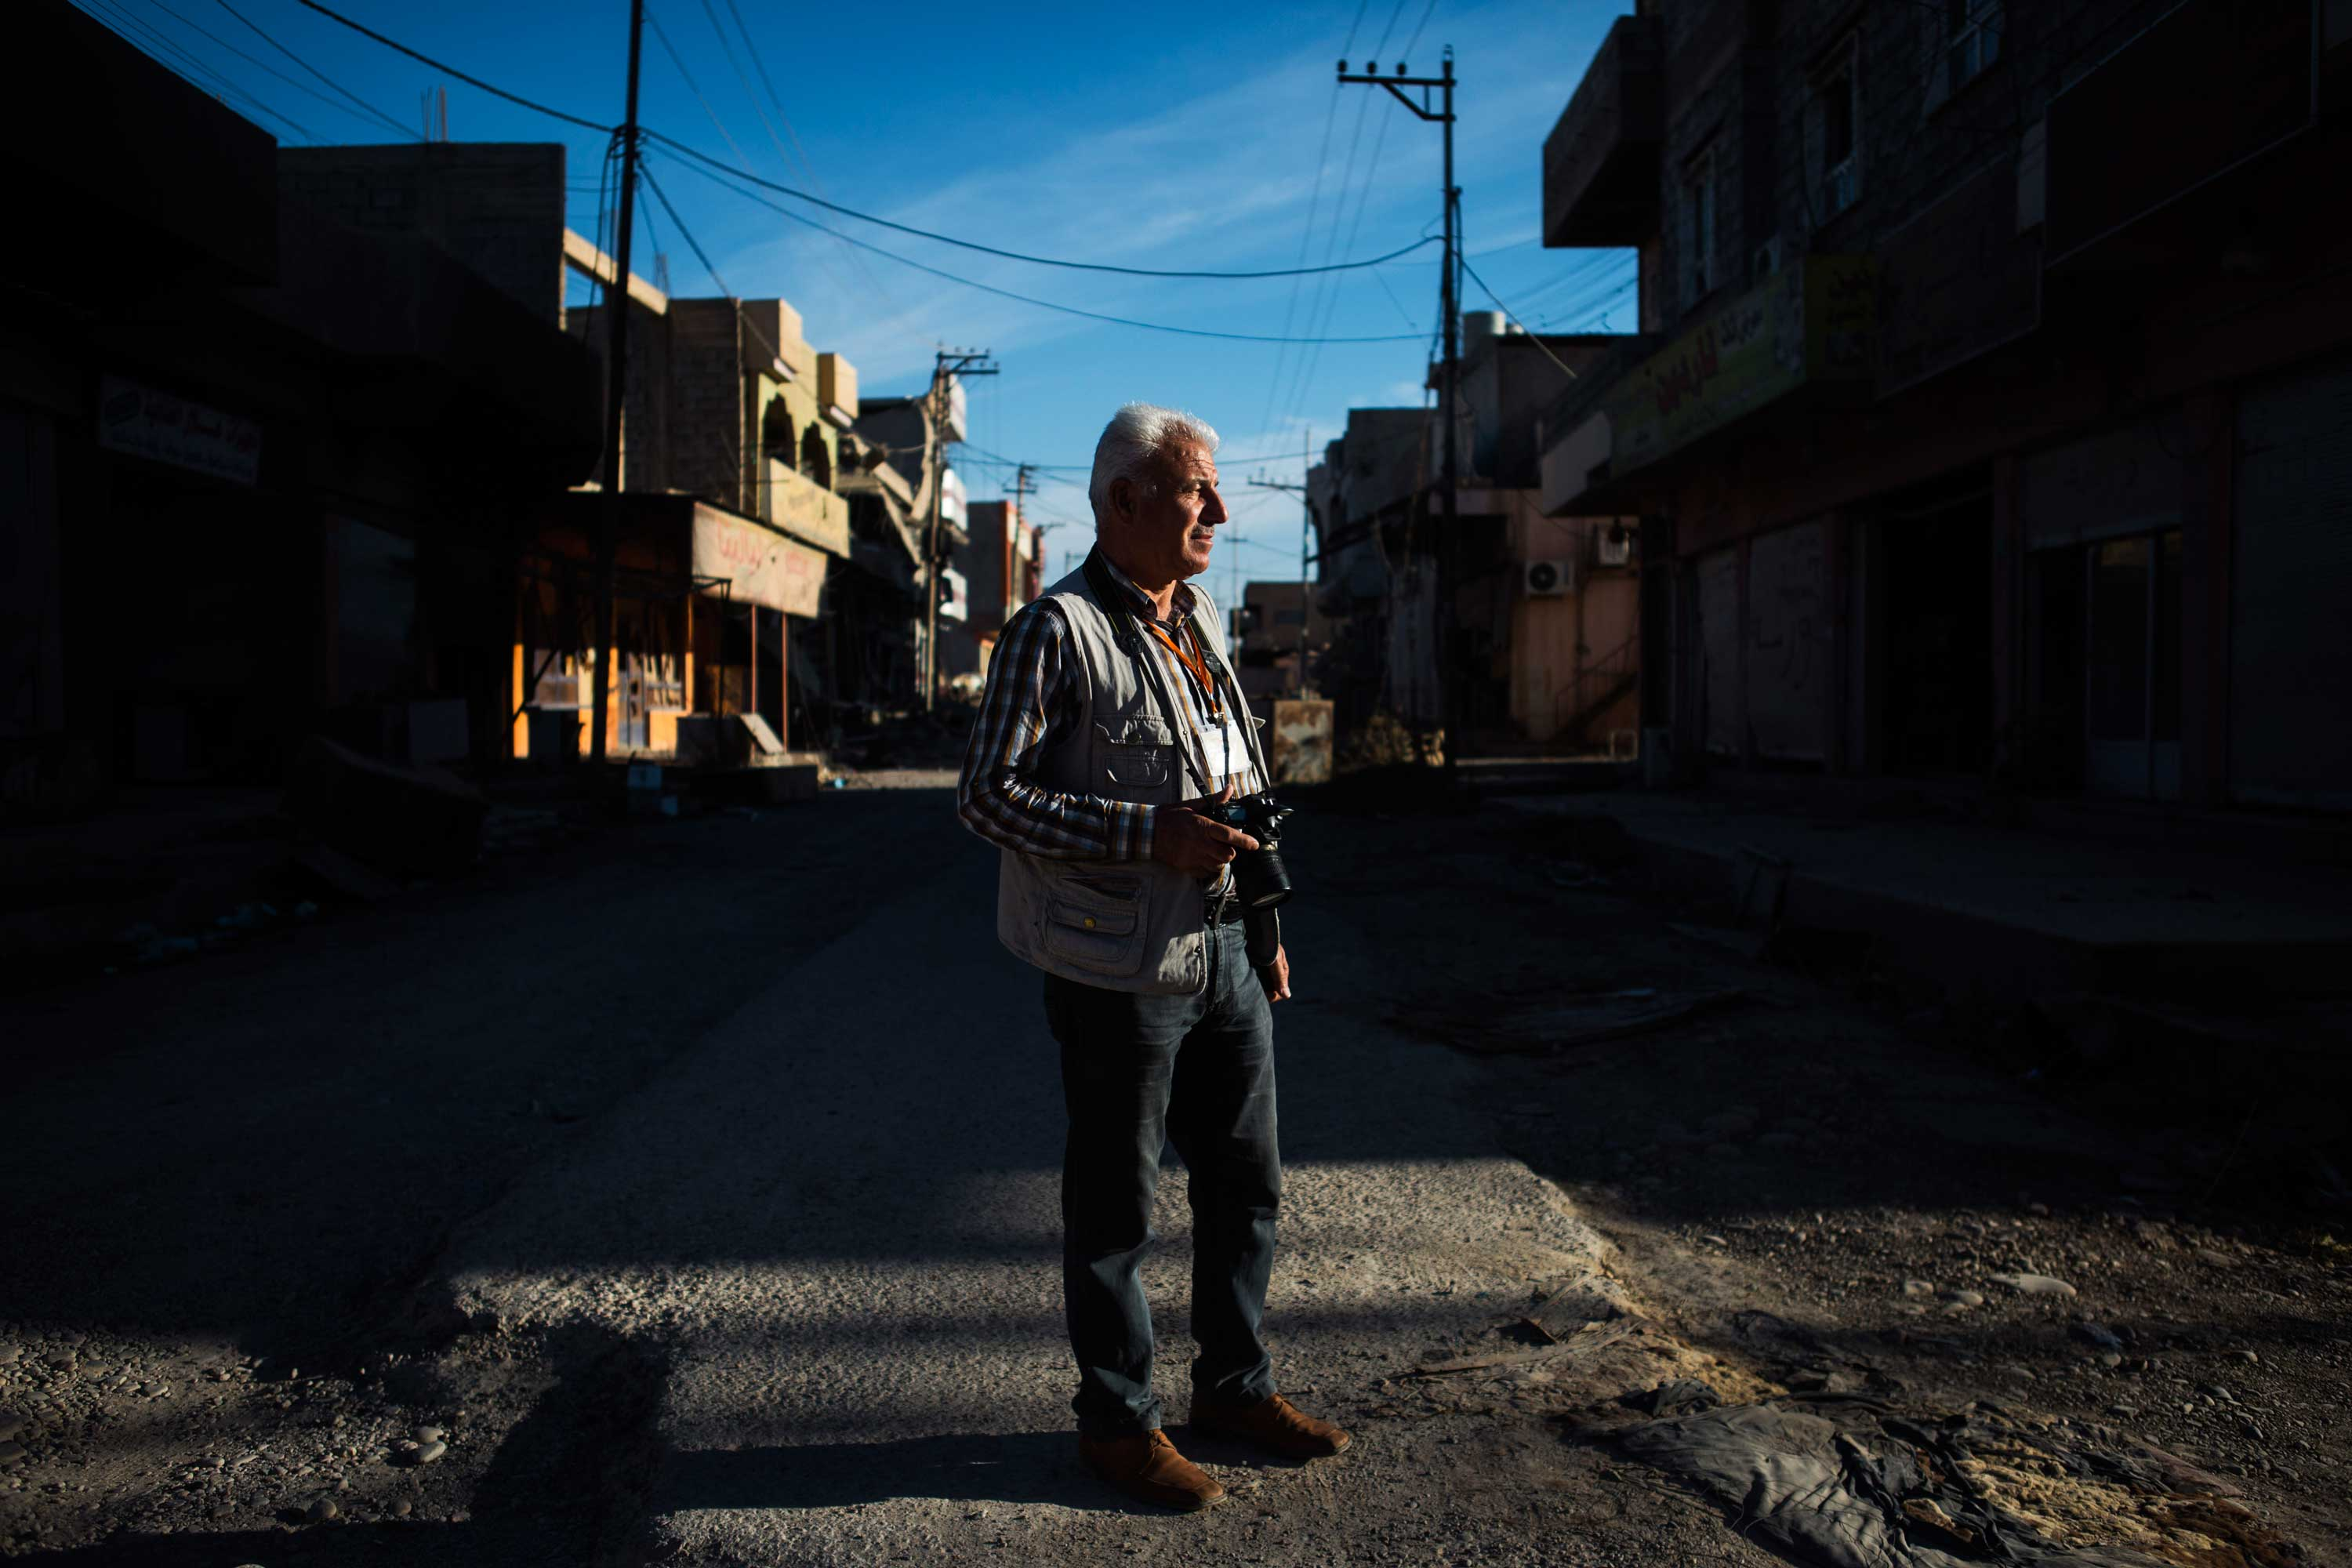 Salam, 51, is a photographer from Qaraqosh and his studio was at the ground floor of his house.